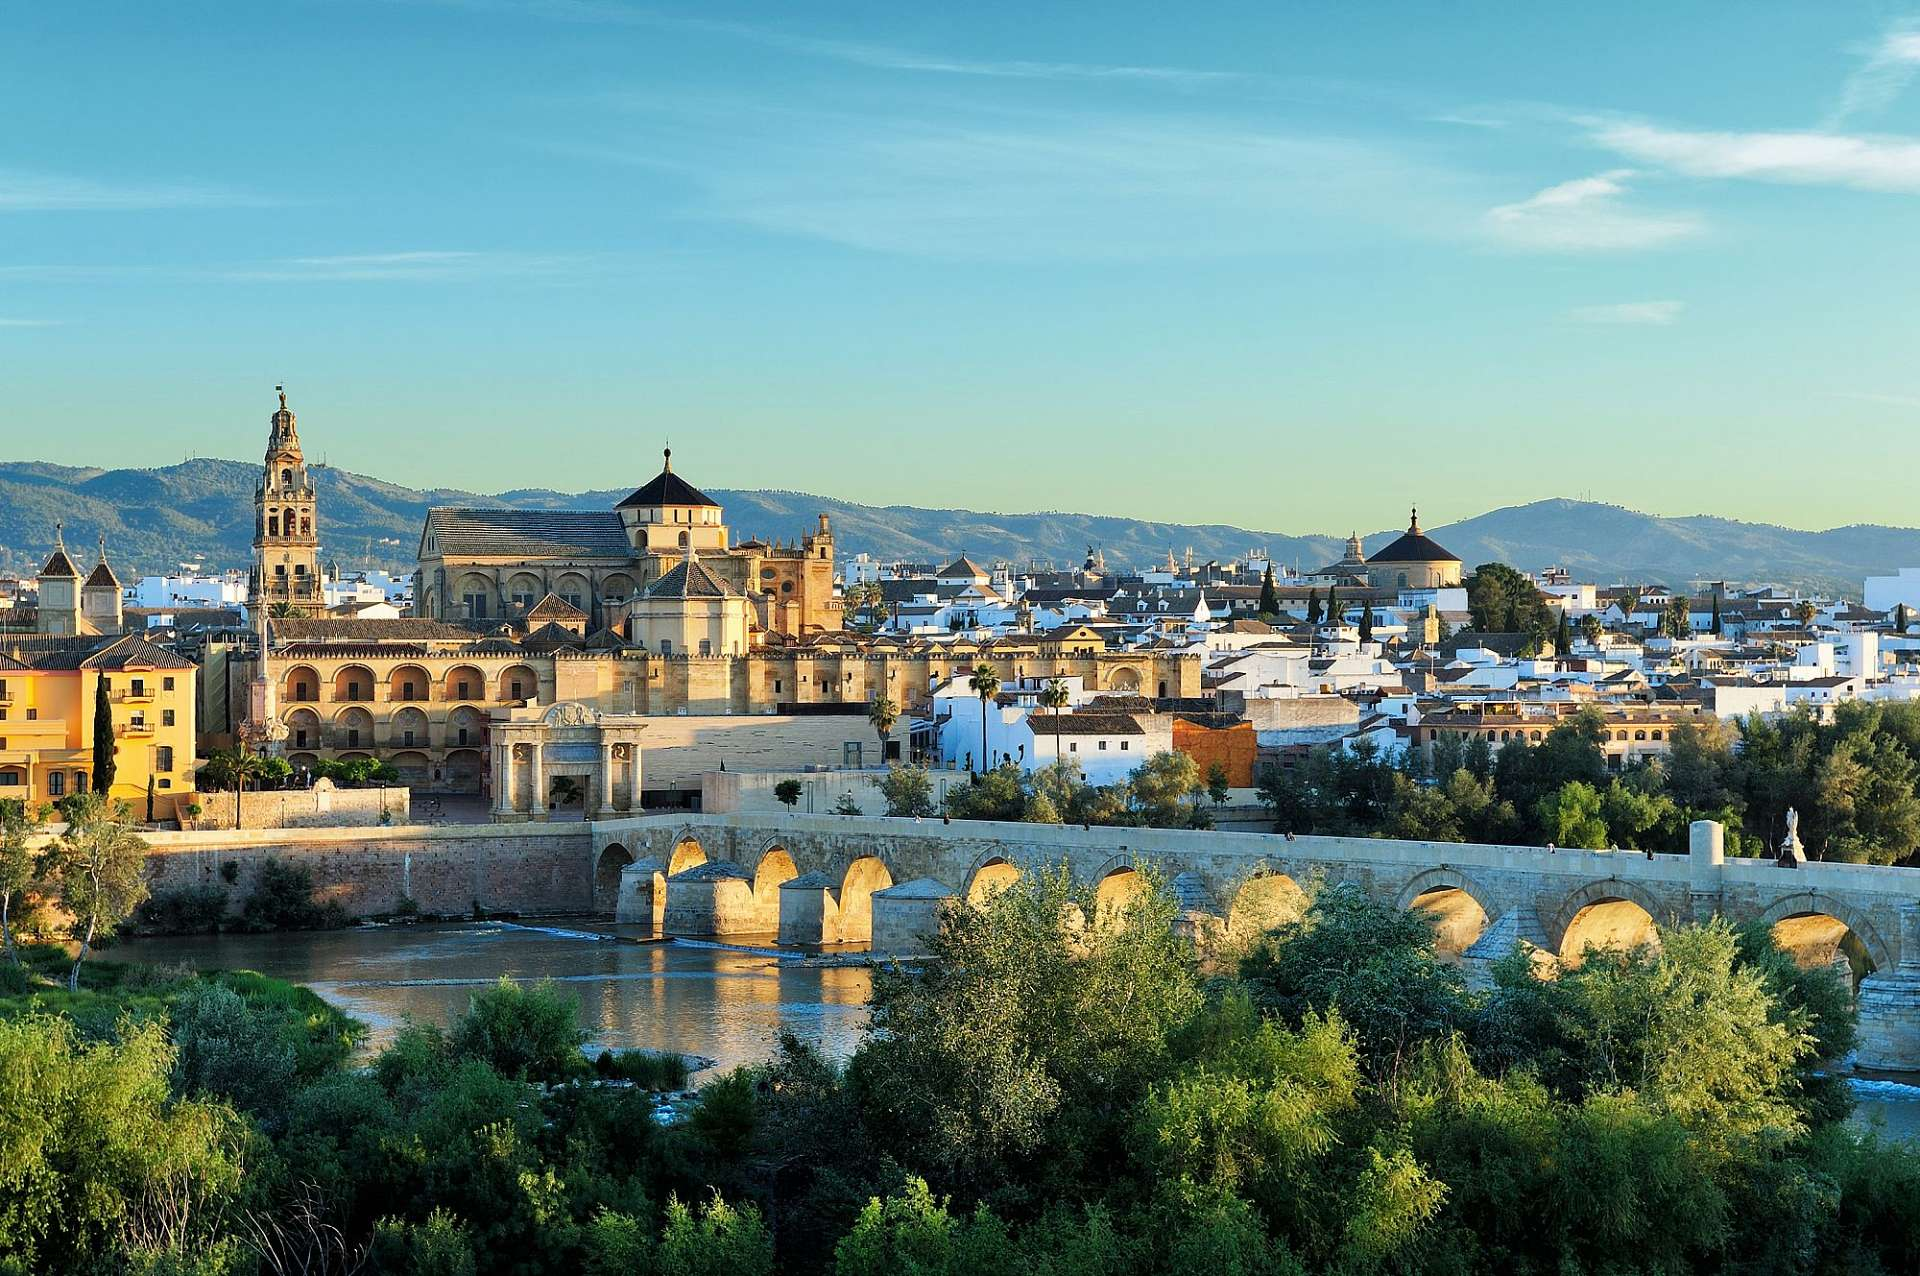 Once the most important city of the Occident: Córdoba